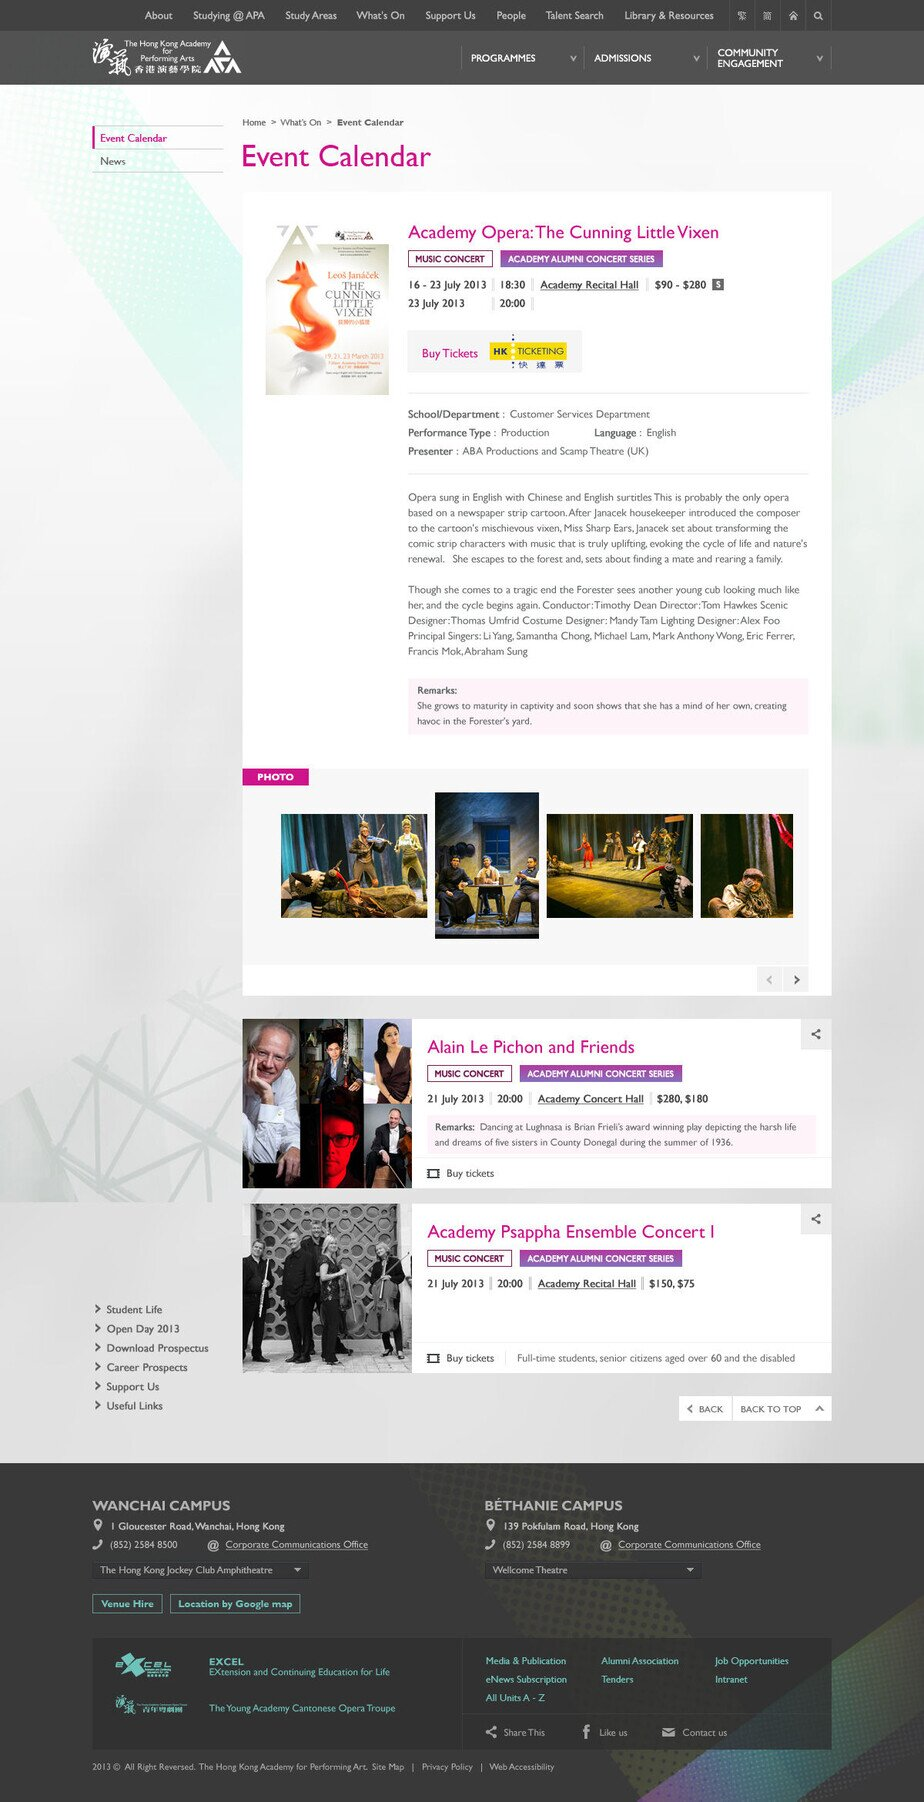 Hong Kong Academy for Performing Arts website screenshot for desktop version 8 of 10